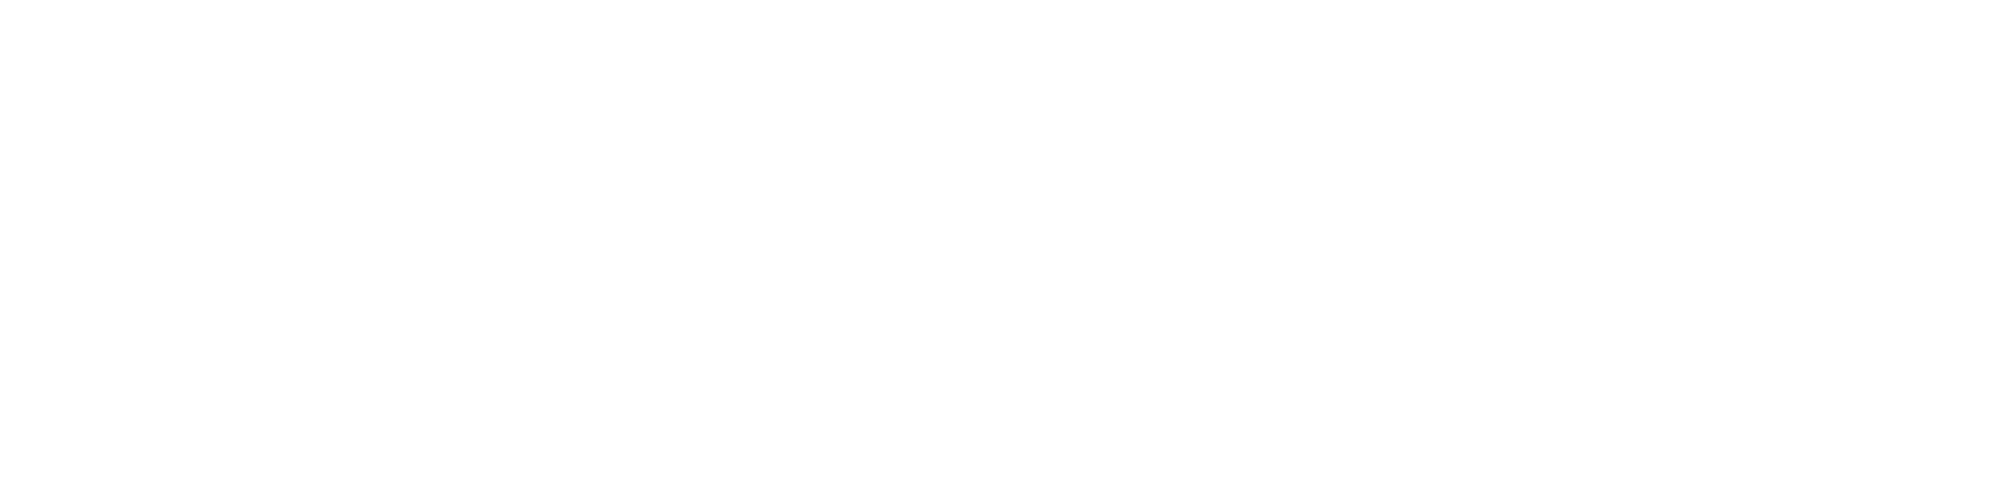 Funbound Co., Ltd.